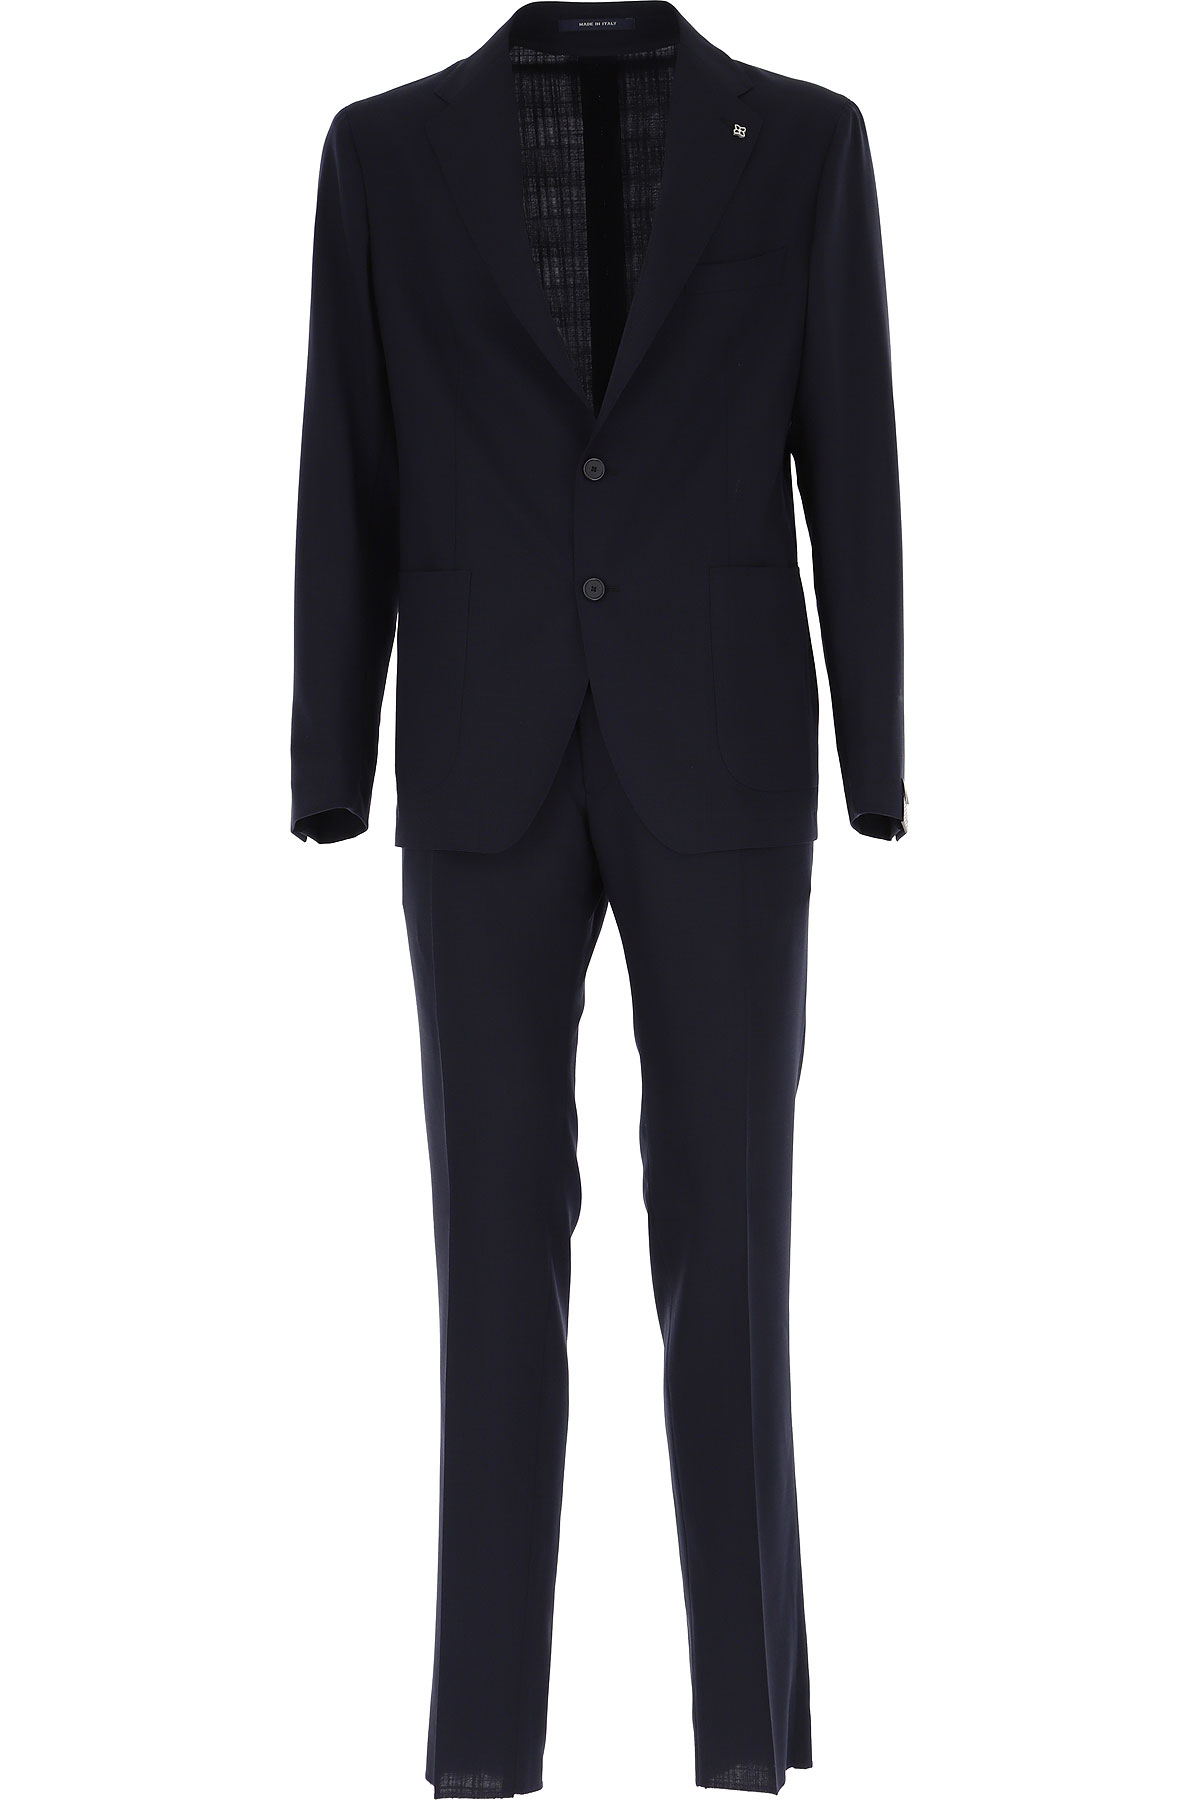 Tagliatore Men's Suit On Sale, Dark Navy Blue, Wool, 2019, L M S XL XXL